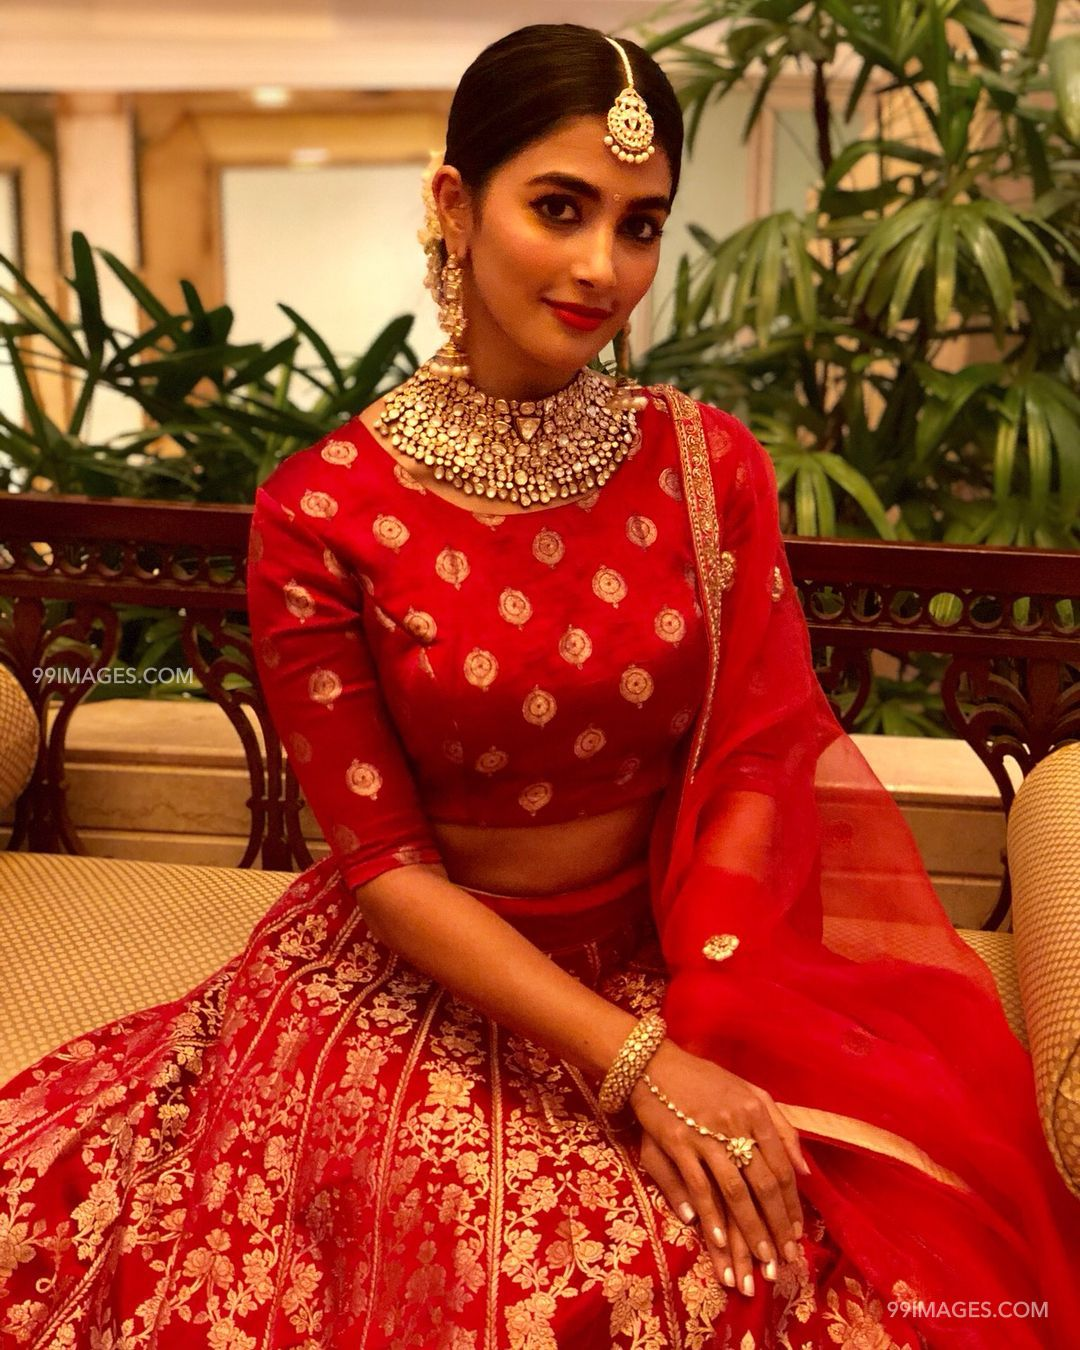 Pooja Hegde Beautiful Photos & Mobile Wallpapers HD (Android/iPhone) (1080p) (21012) - Pooja Hegde